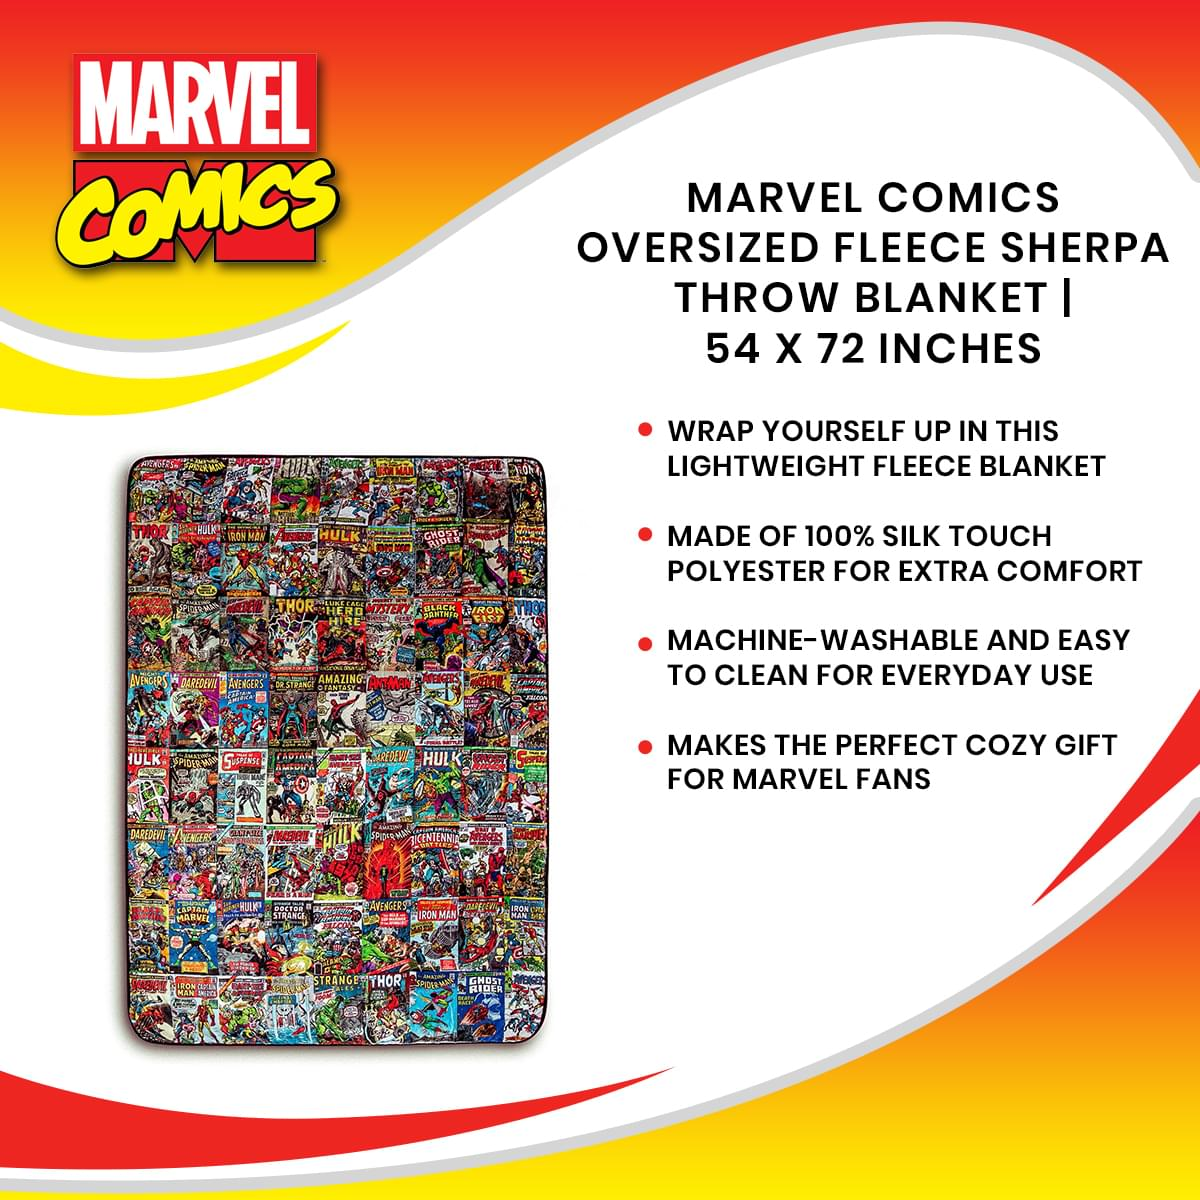 Marvel Comics Oversized Fleece Sherpa Throw Blanket | 54 x 72 Inches